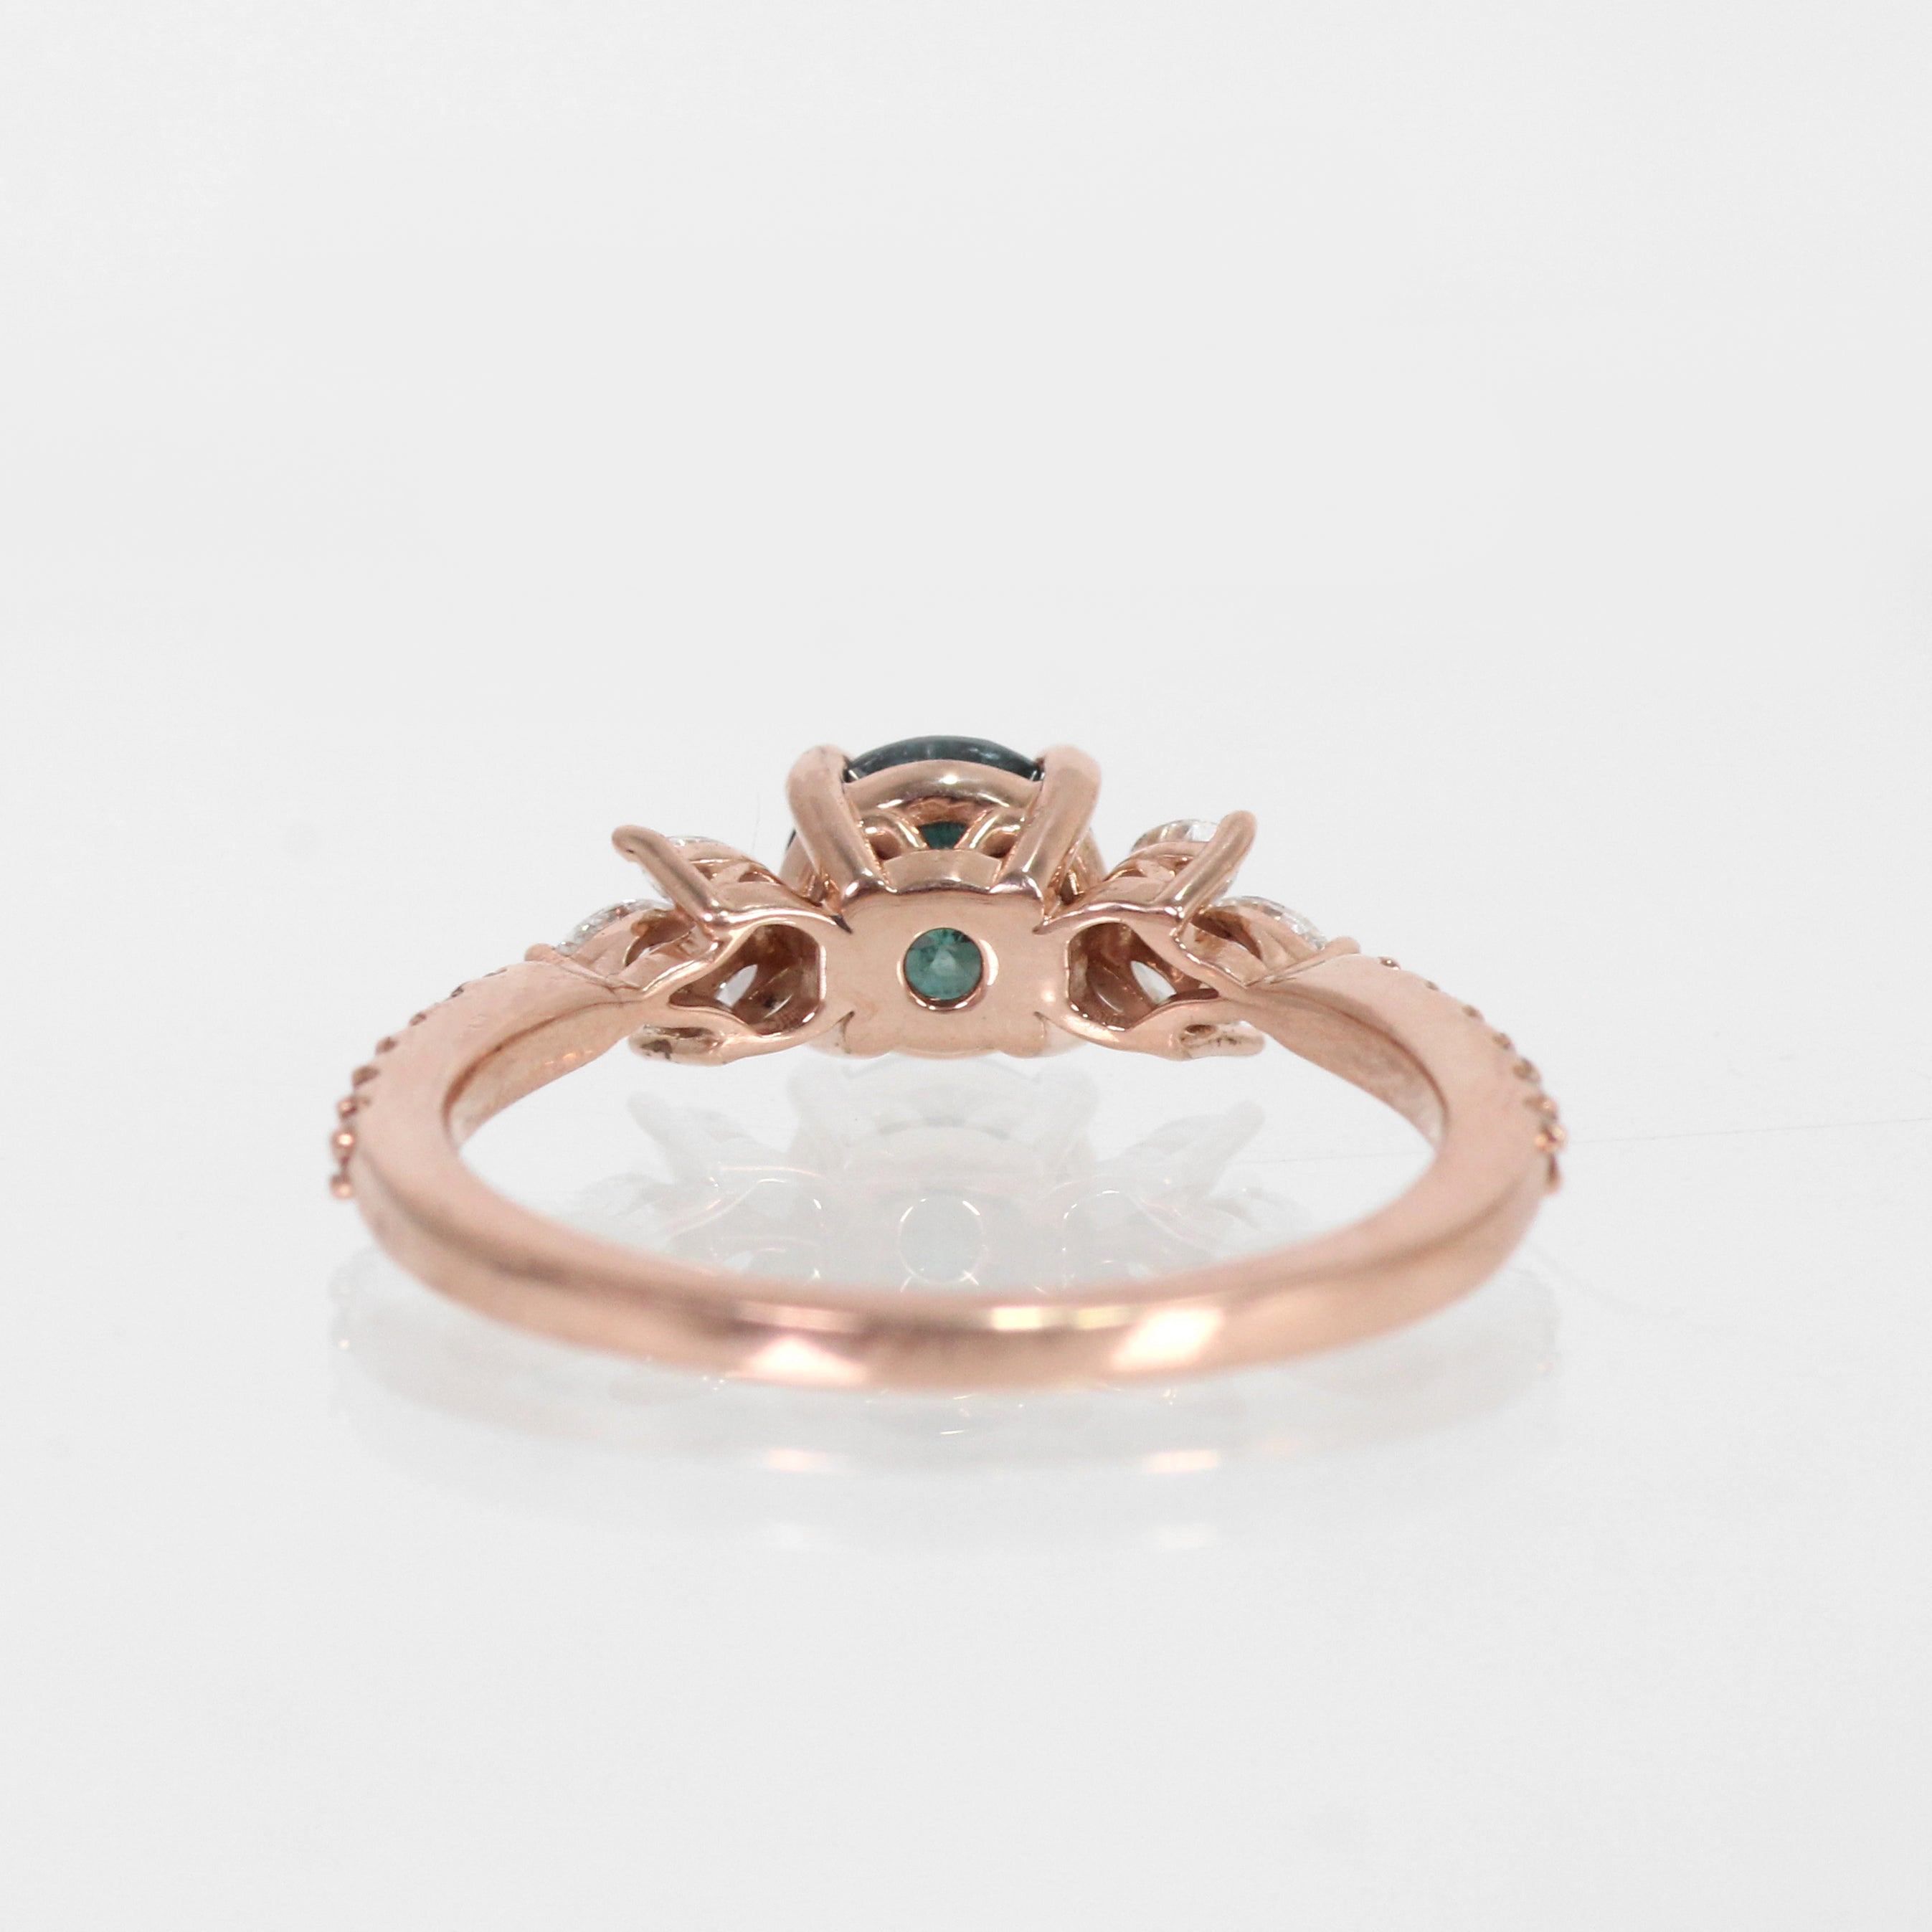 Betty Ring with Sea Green Diamond in 14k Rose Gold - Ready to Size and Ship